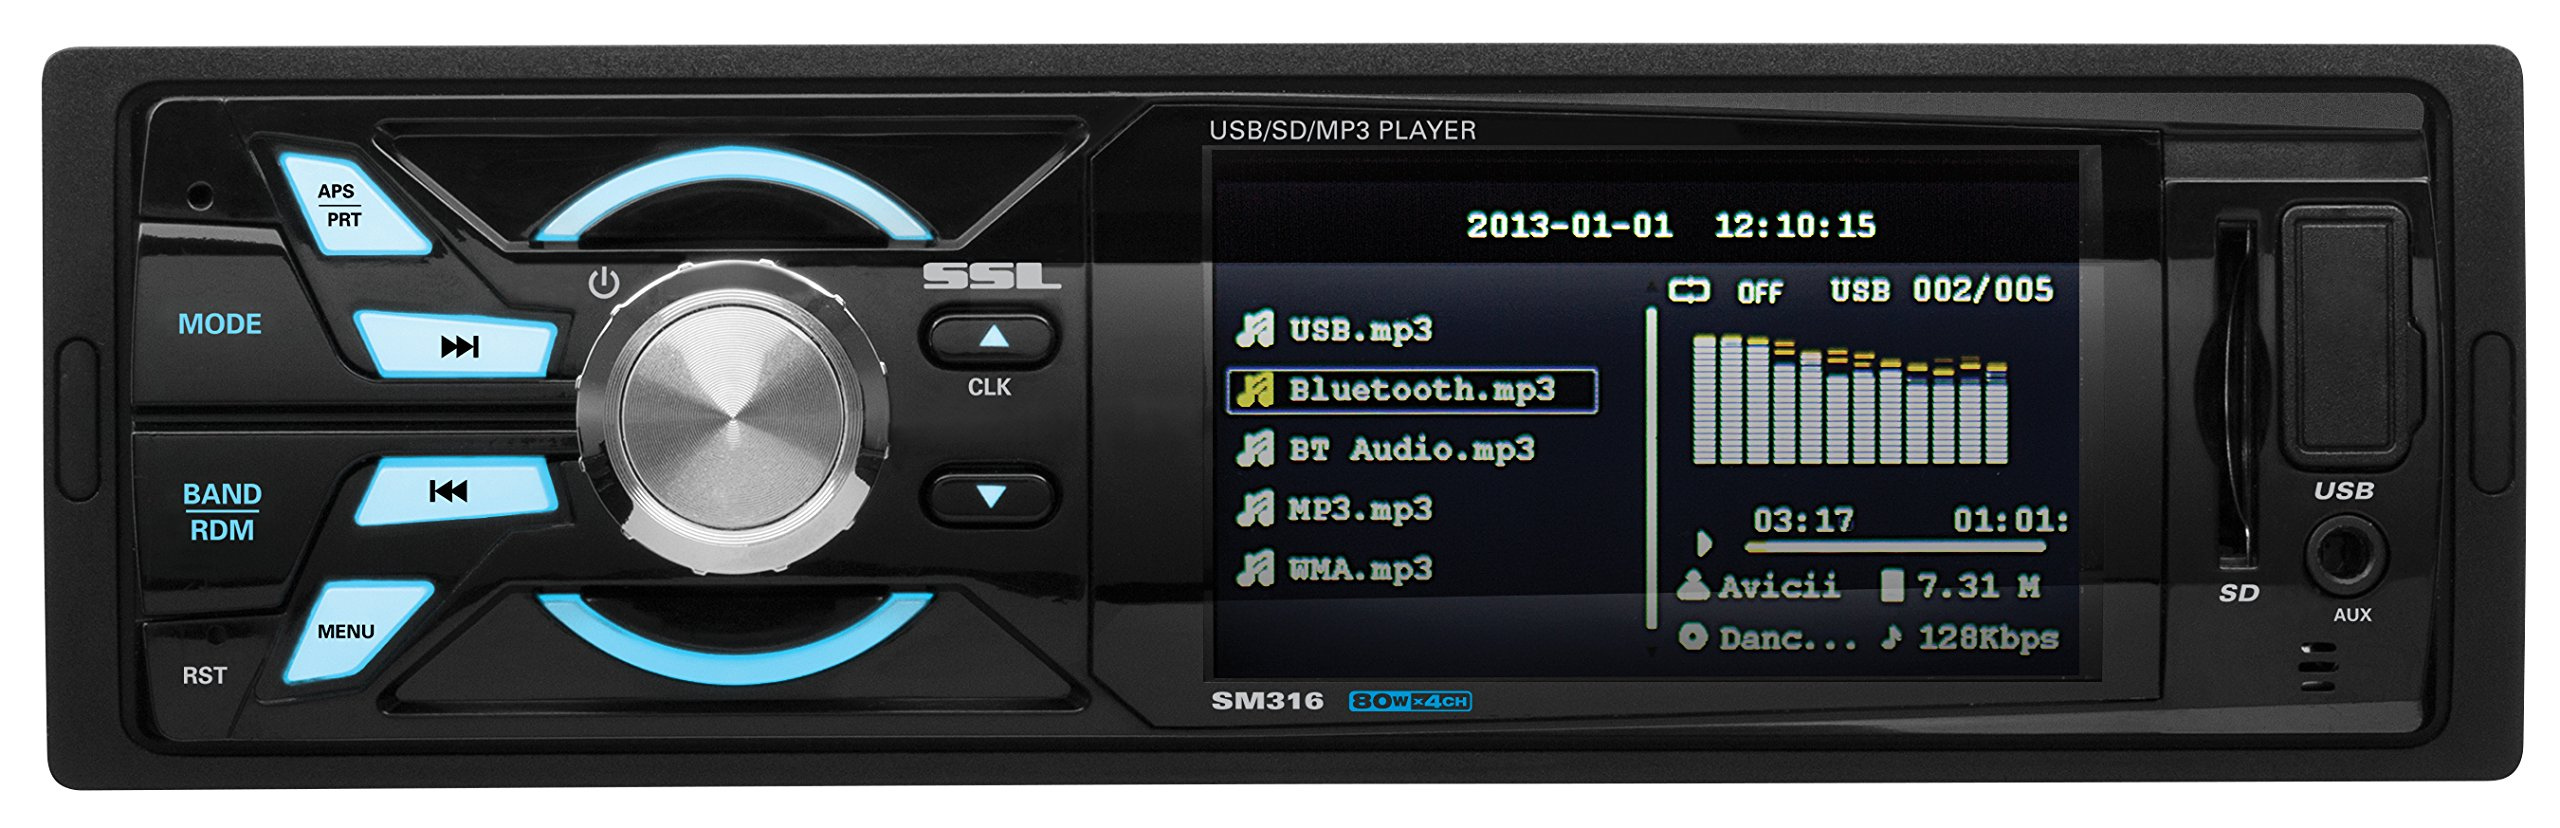 SOUND STORM SM316 Single-DIN 3.2 inch Screen MECH-LESS Multimedia Player (no CD or DVD), Receiver, Wireless Remote